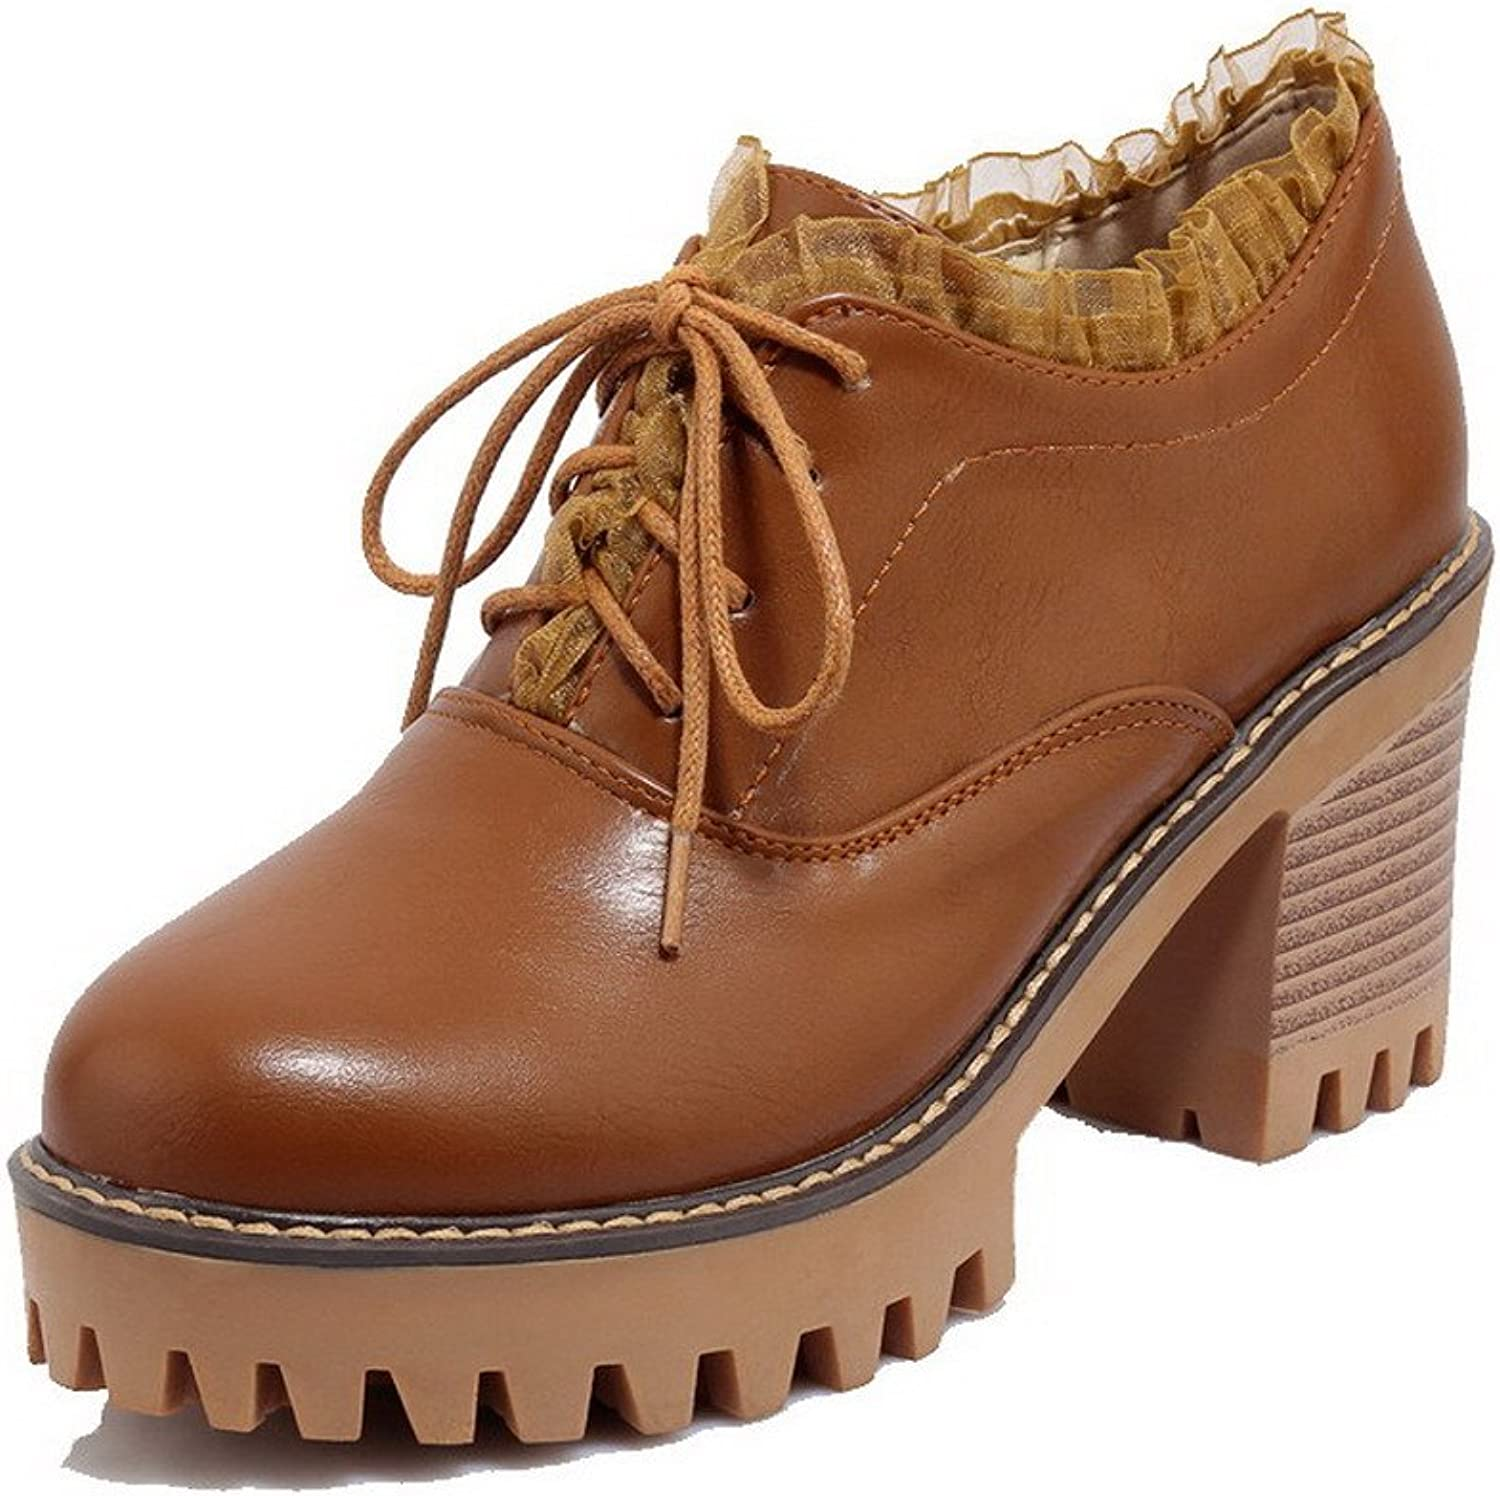 WeiPoot Women's PU Round-Toe High-Heels Lace-up Solid Pumps-shoes